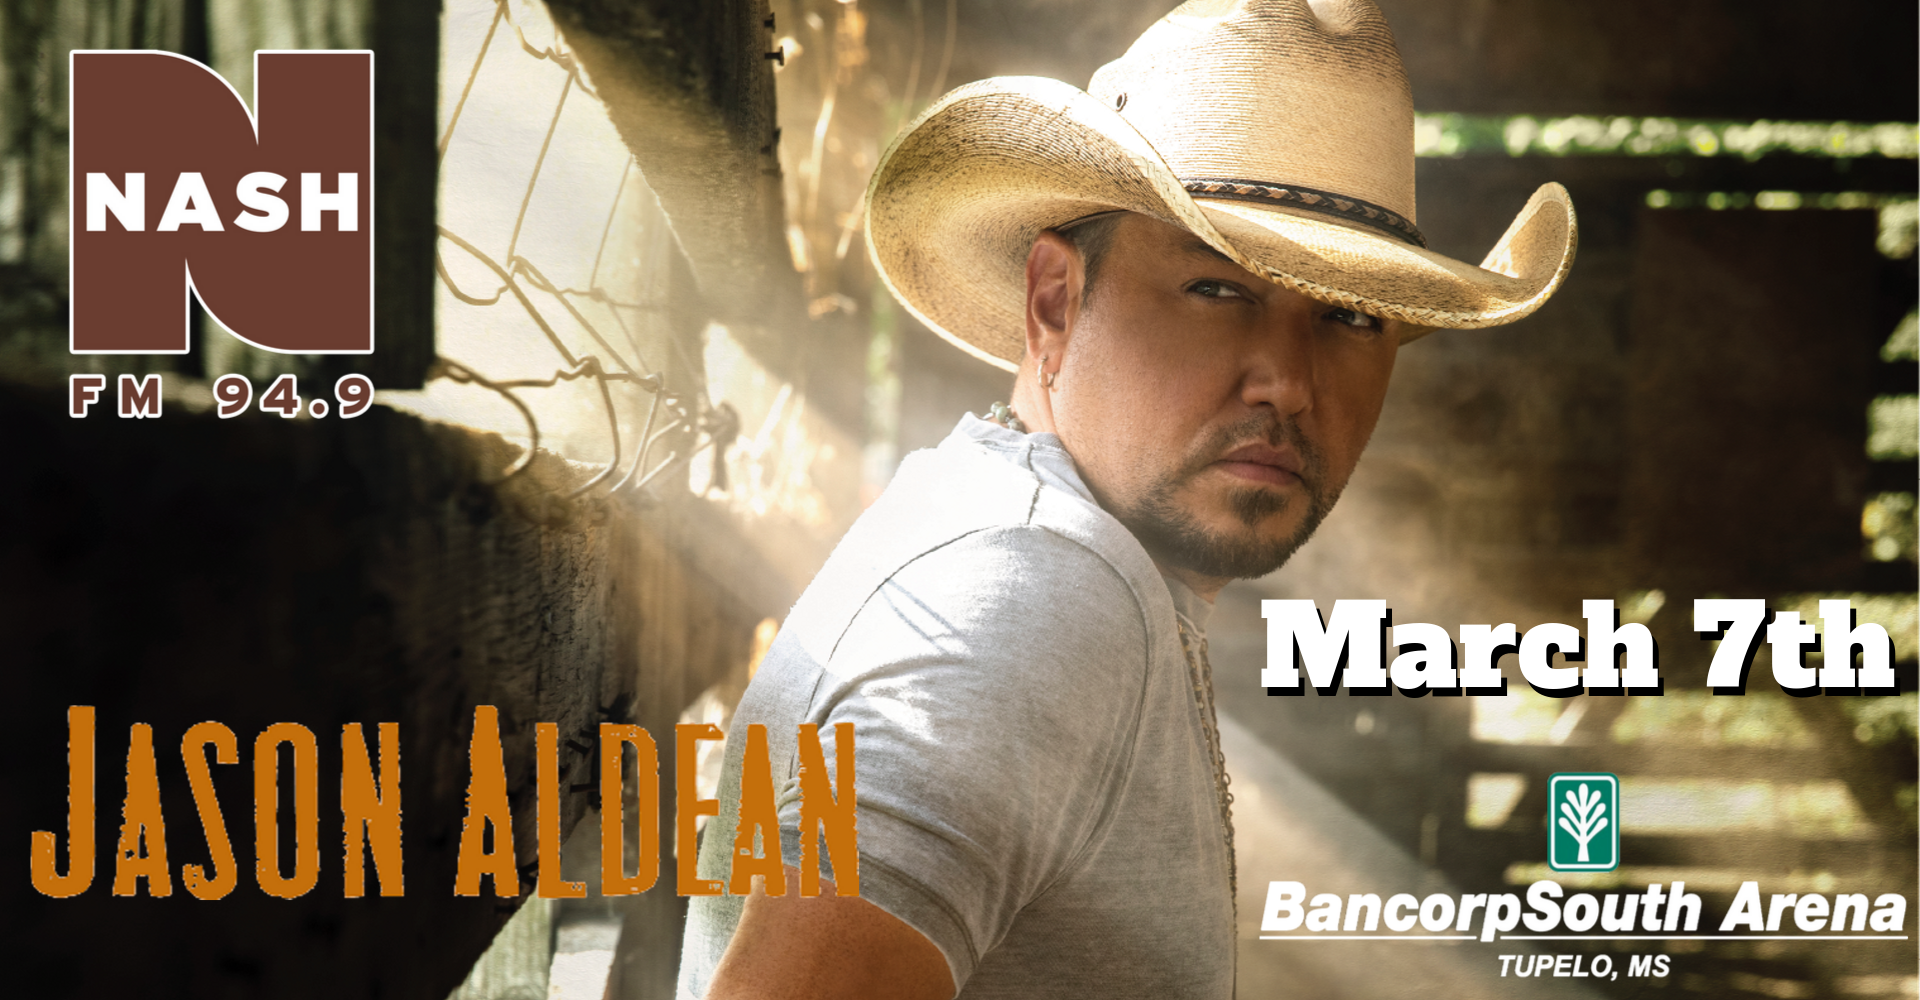 Jason Aldean- March 7th at the BancorpSouth Arena